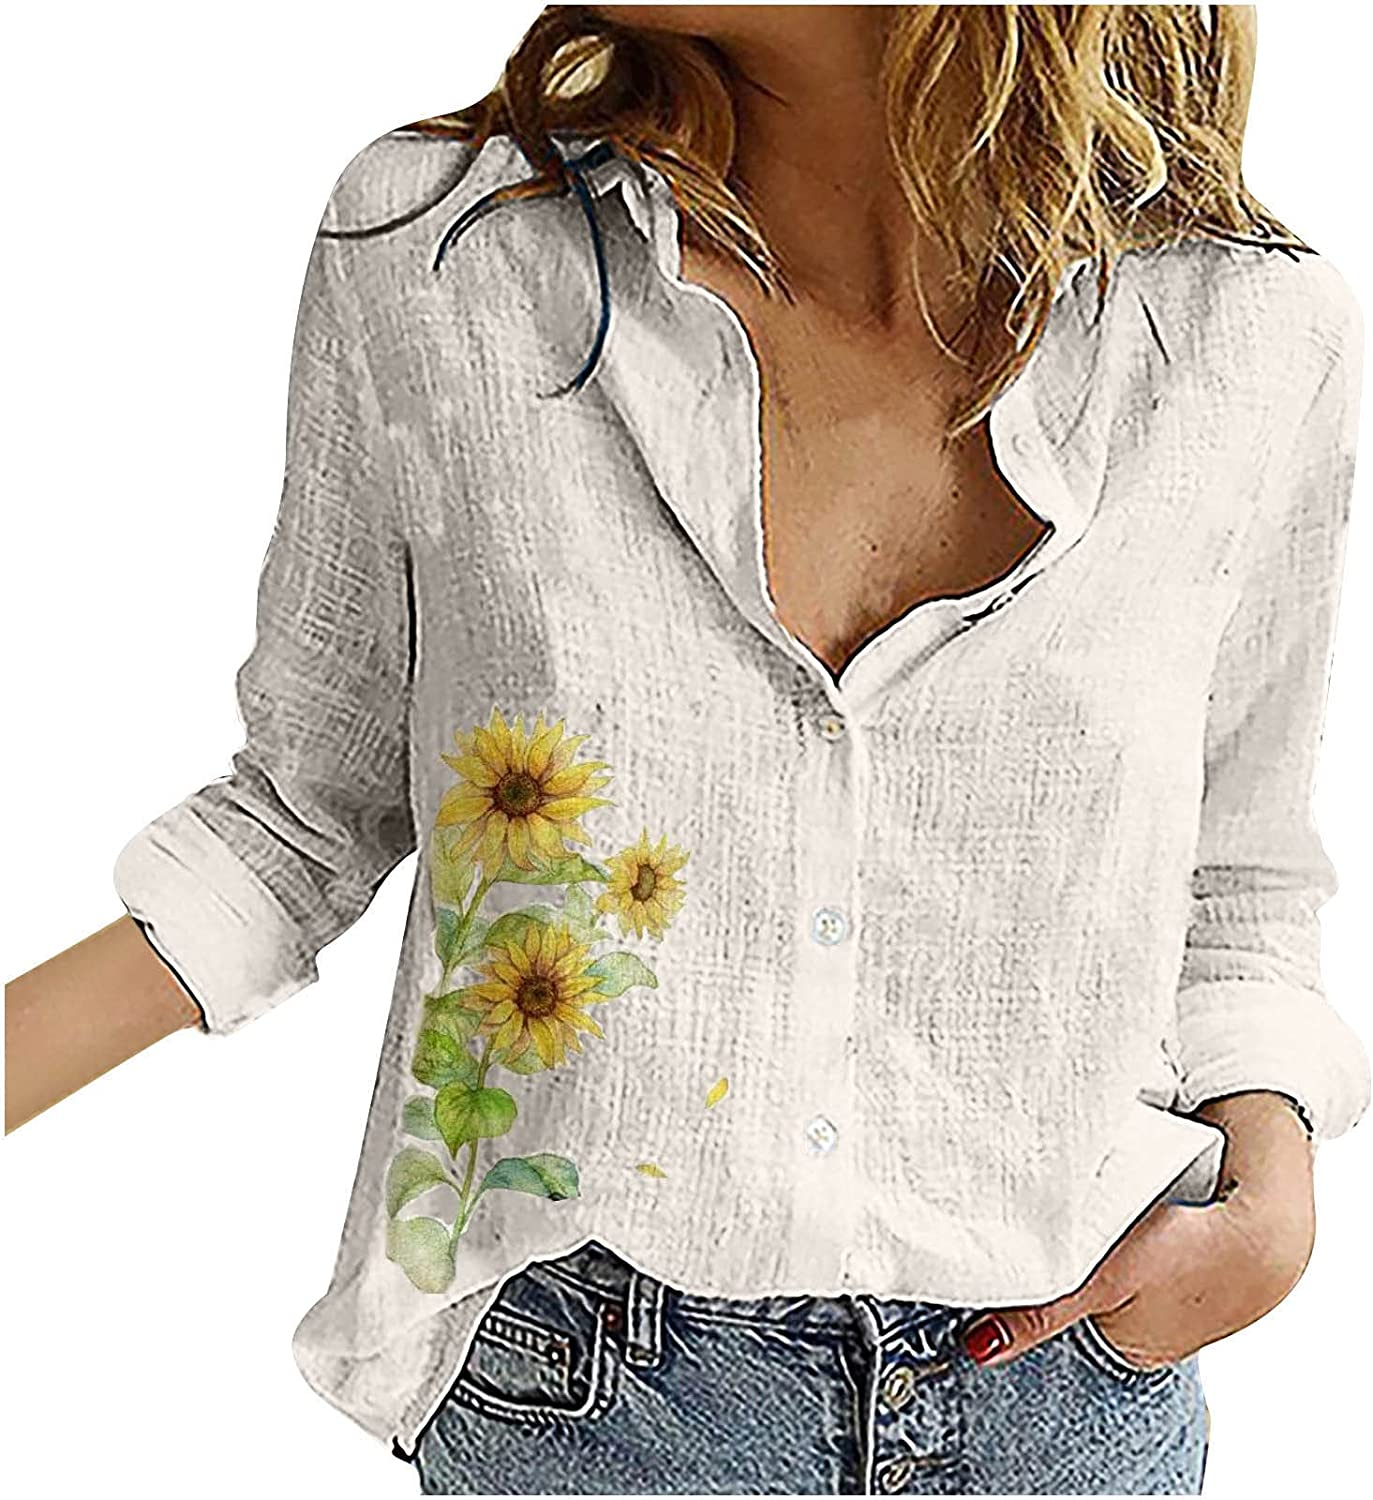 Fashion Women Loose Button Butterfly Print Lapel Long Sleeve T-Shirts Blouse Top Summer Tops Tee Shirts Blouse